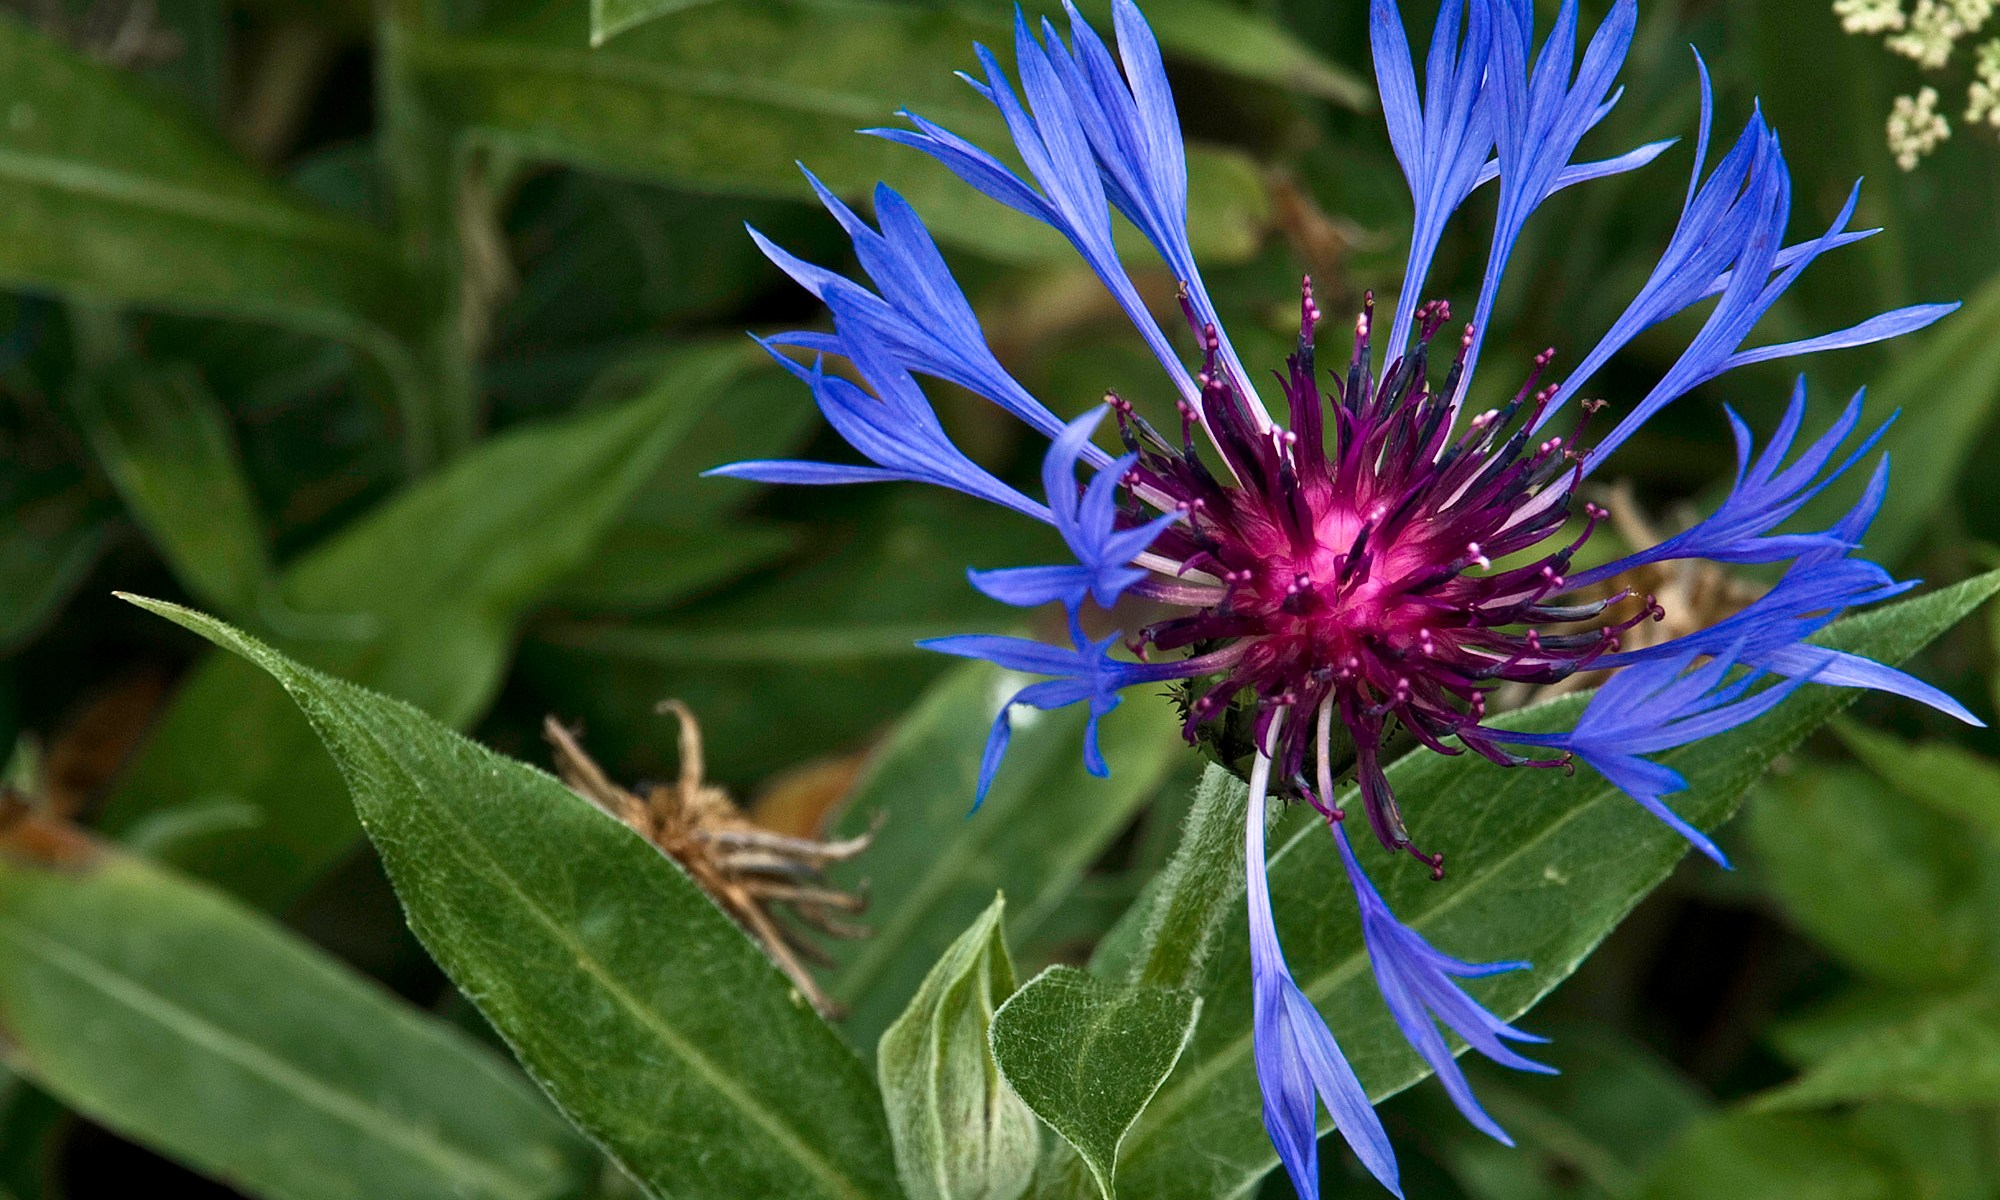 Blue and Purple Spiked Flower